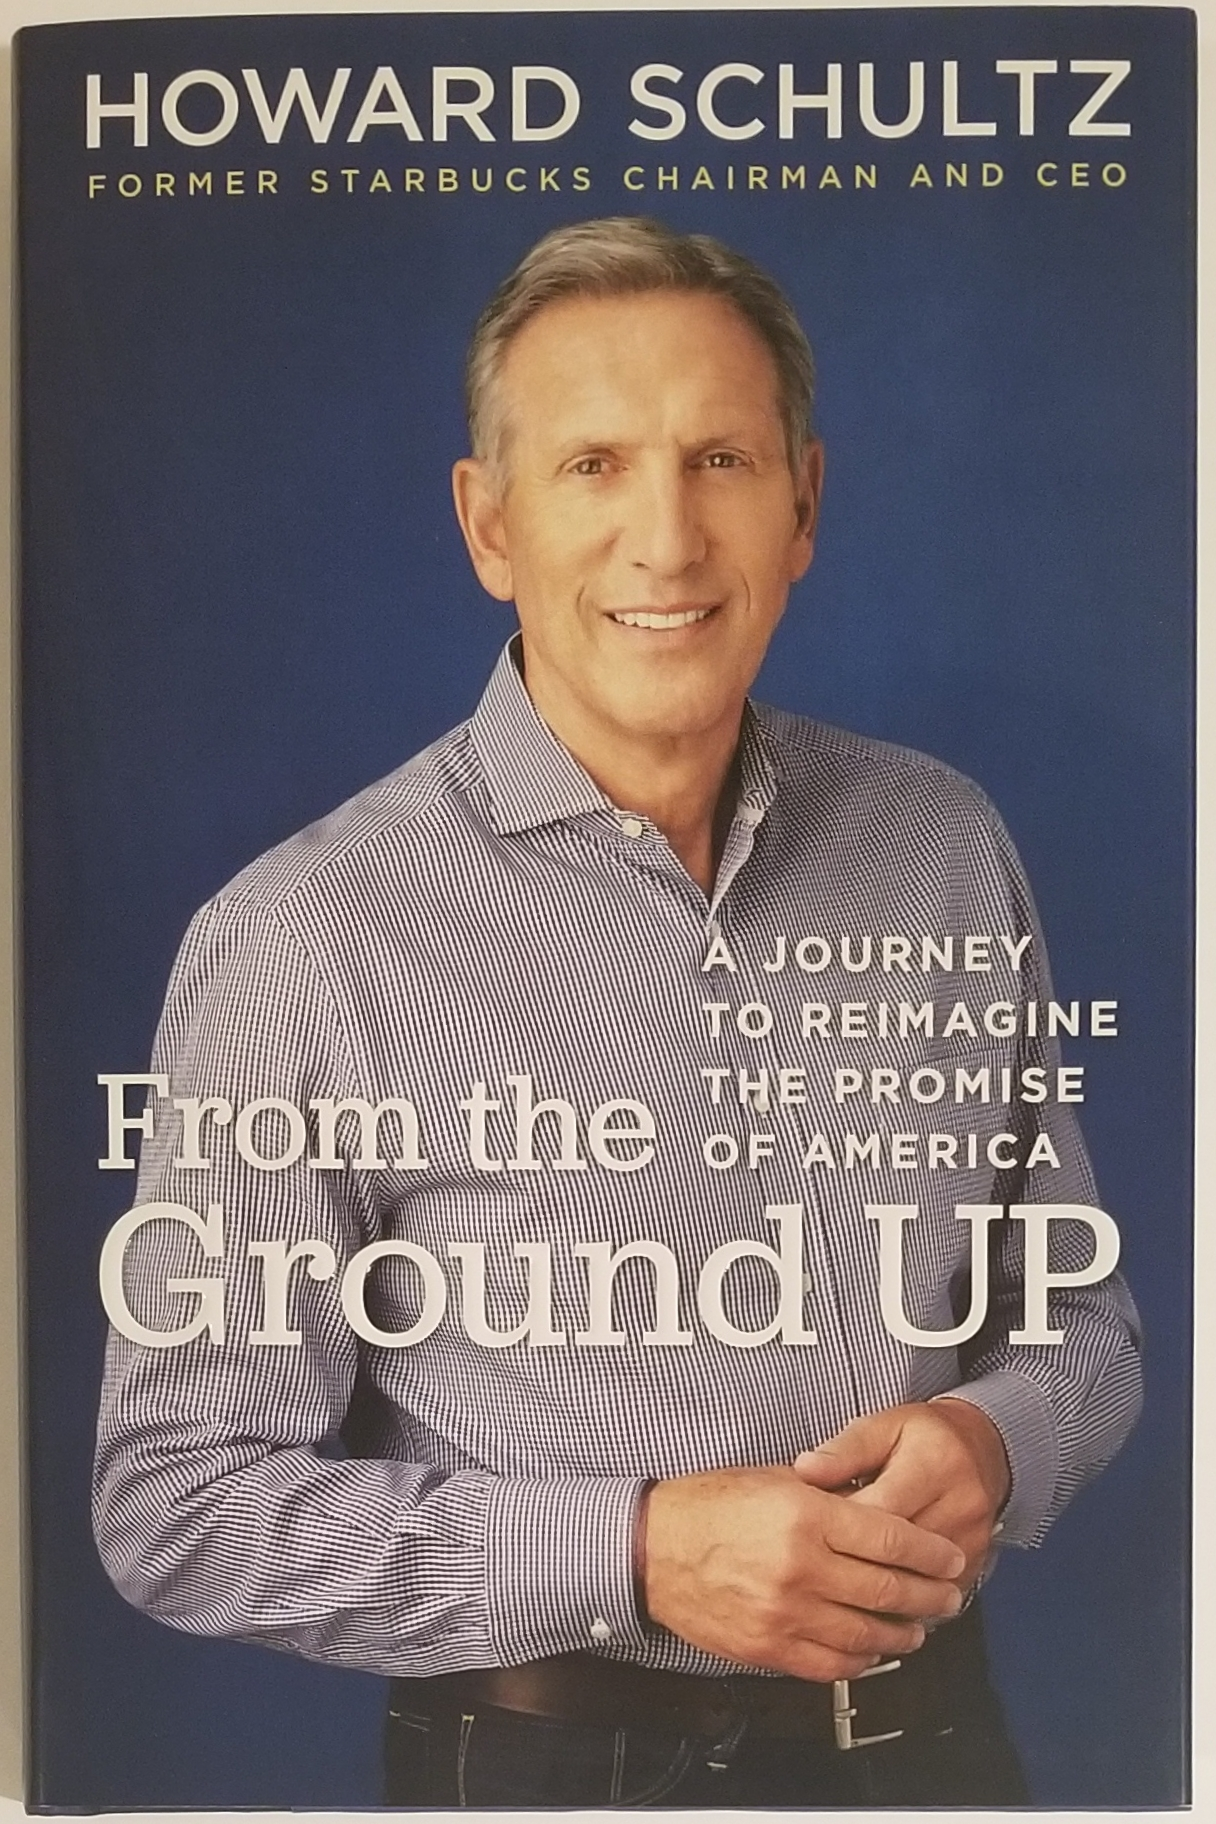 FROM THE GROUND UP. Howard Schultz.